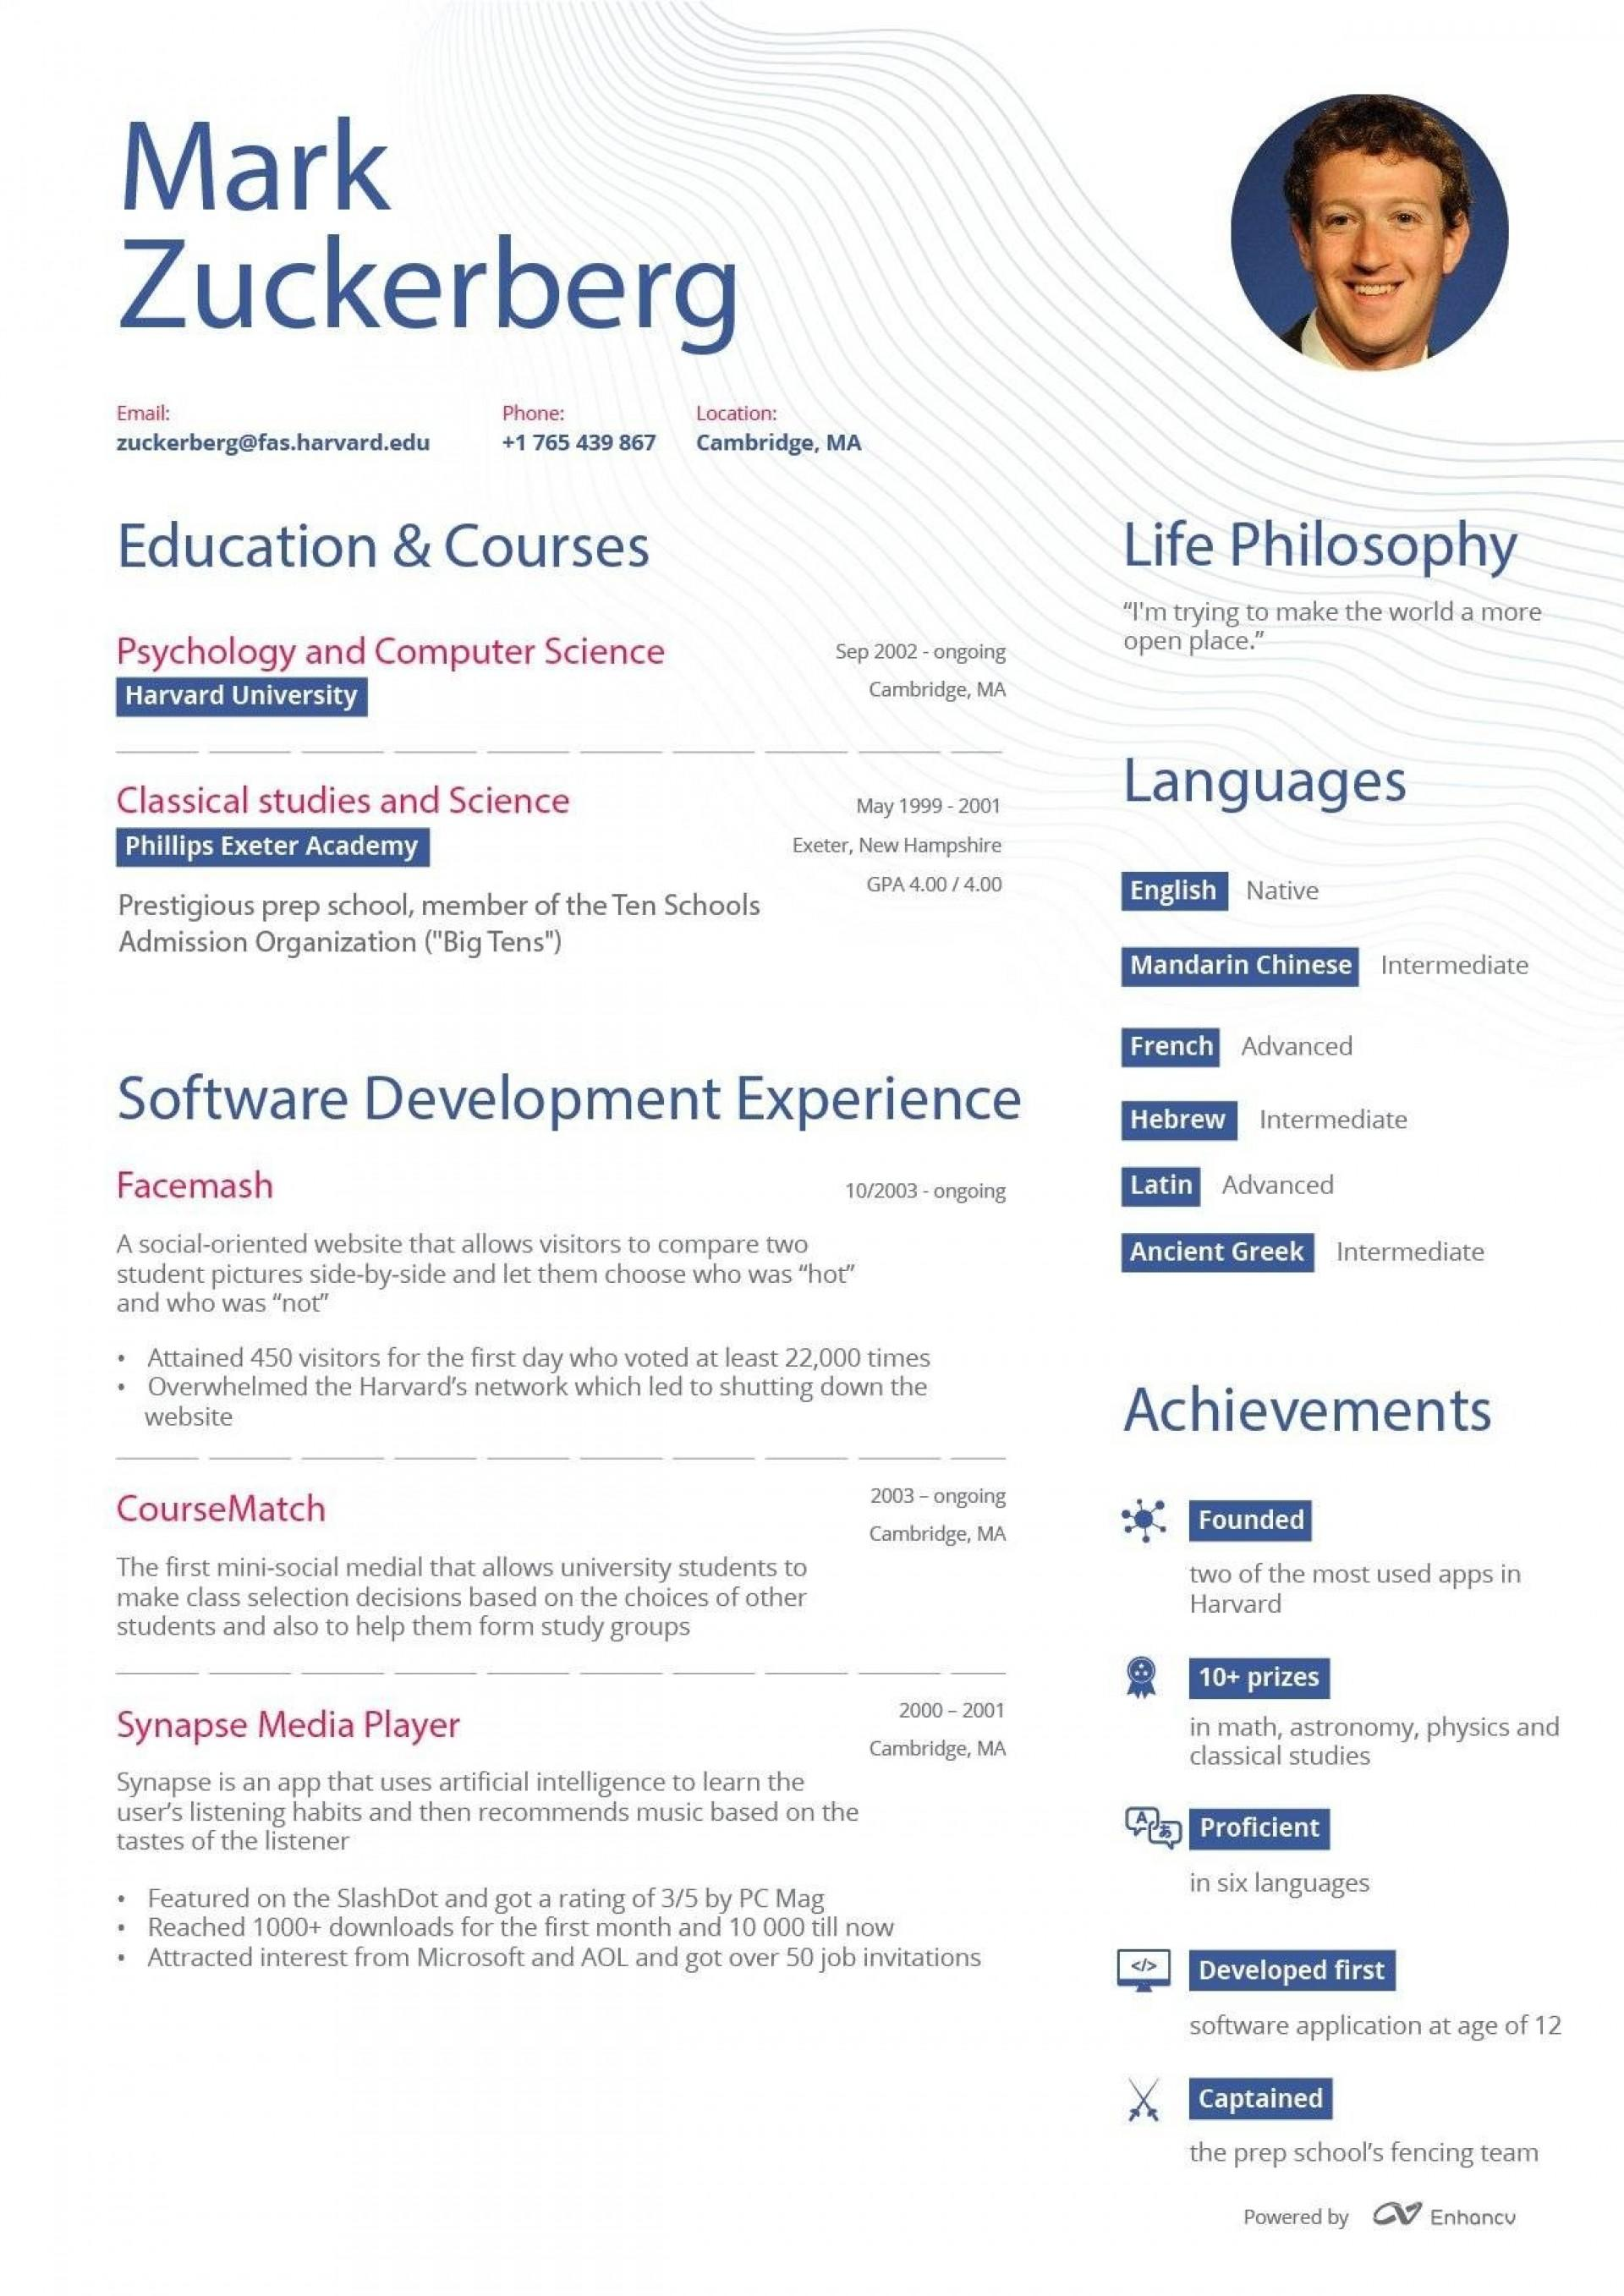 56 Top Free Online Resume Templates Australia for Pictures